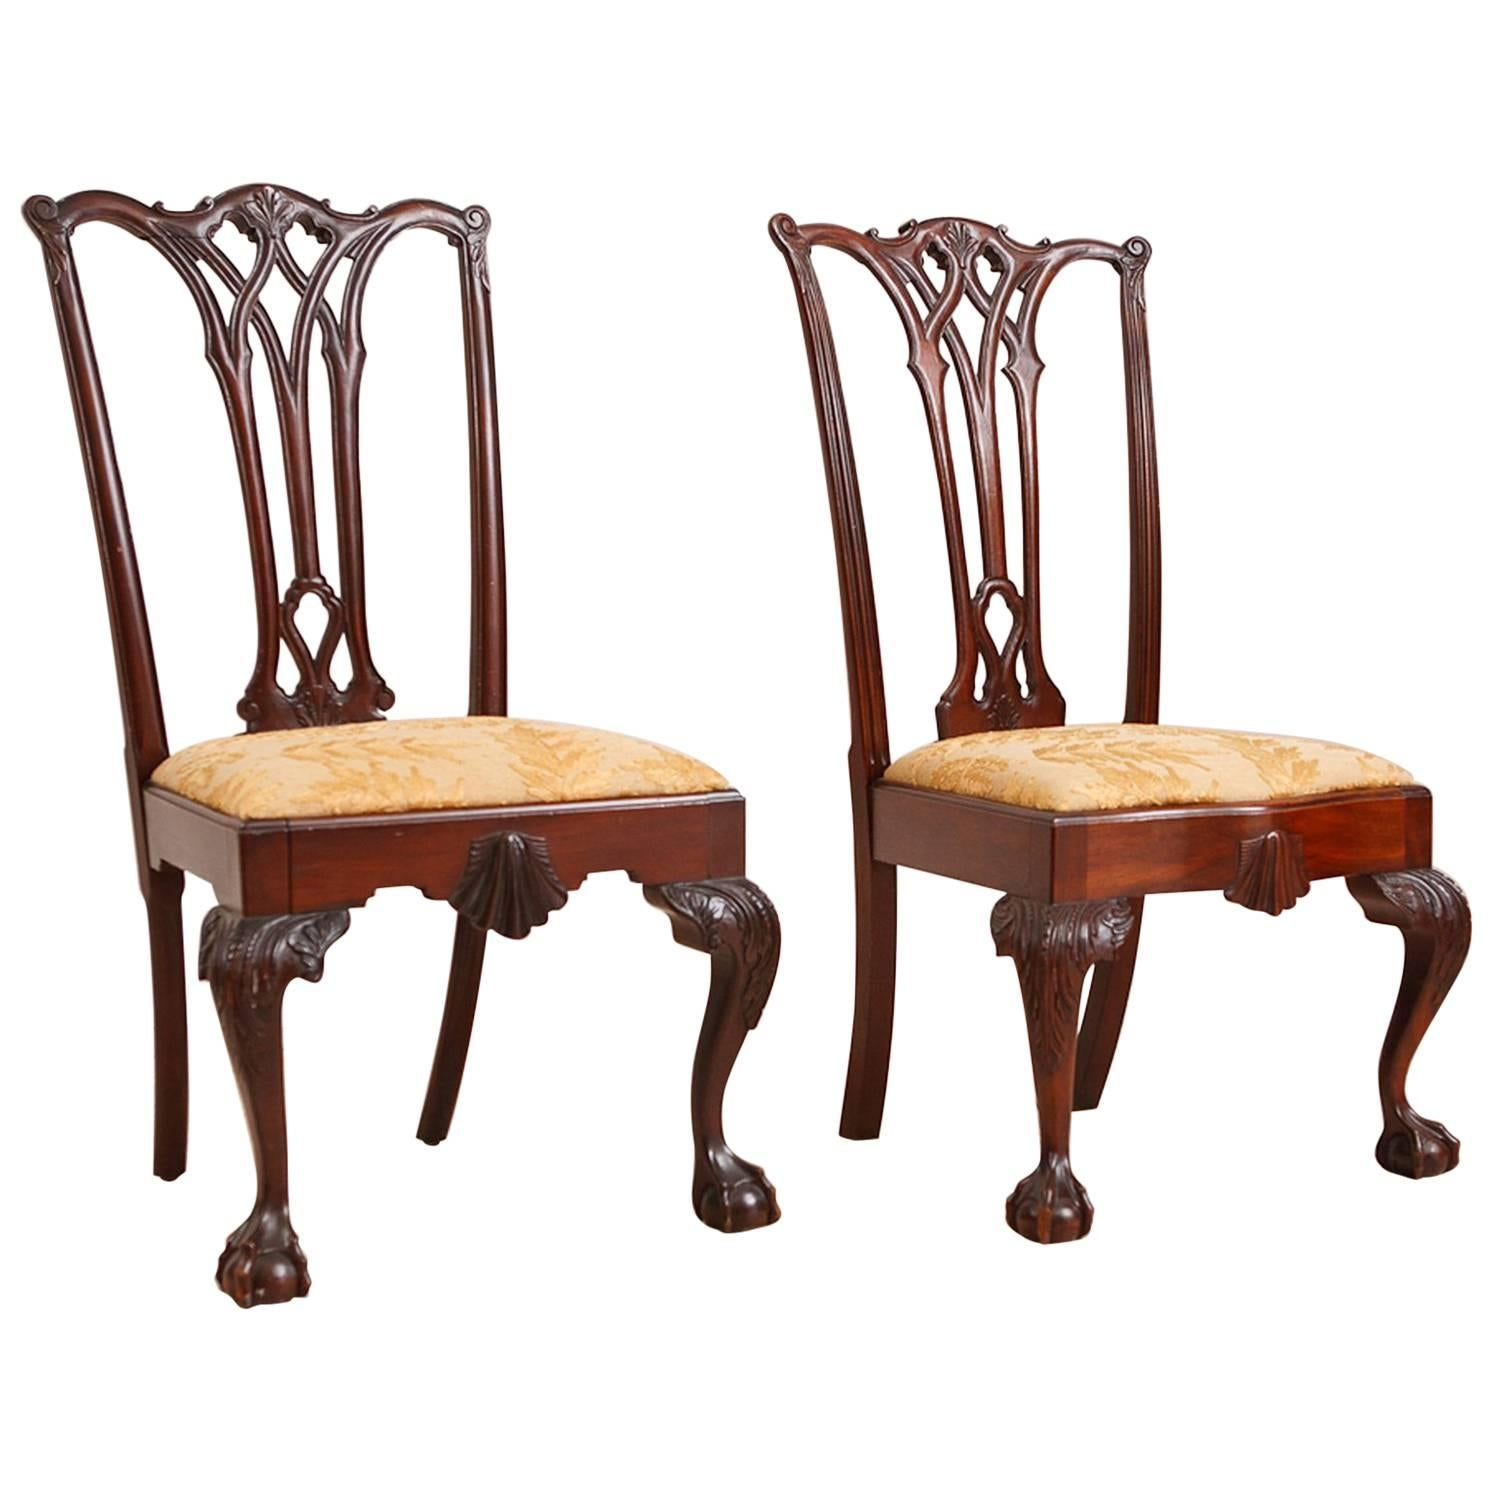 Pair Of Centennial Philadelphia Chippendale Style Chairs In Mahogany, Circa  1870